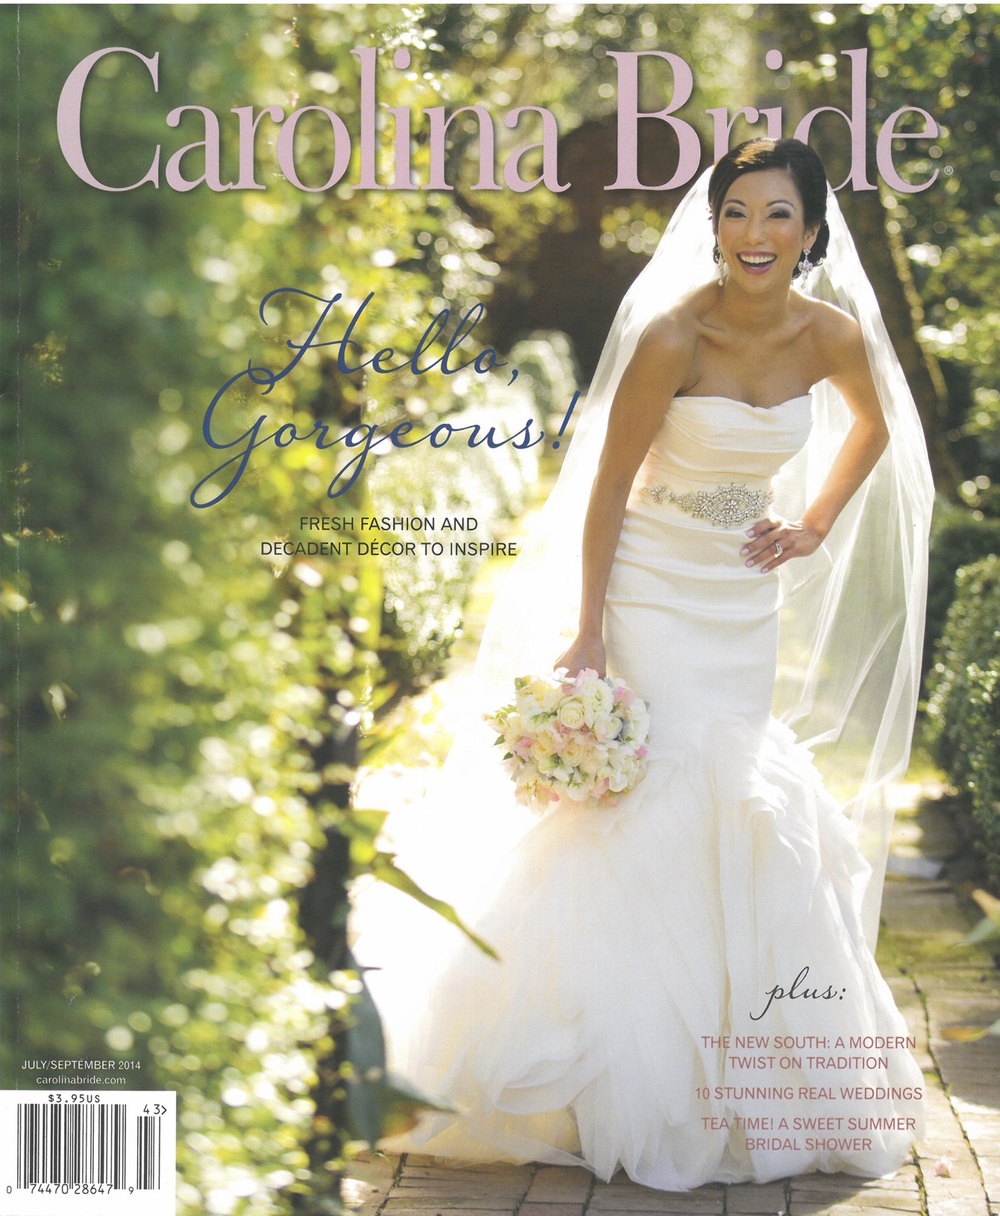 Carolina Bride July : September 2014 cover .jpg